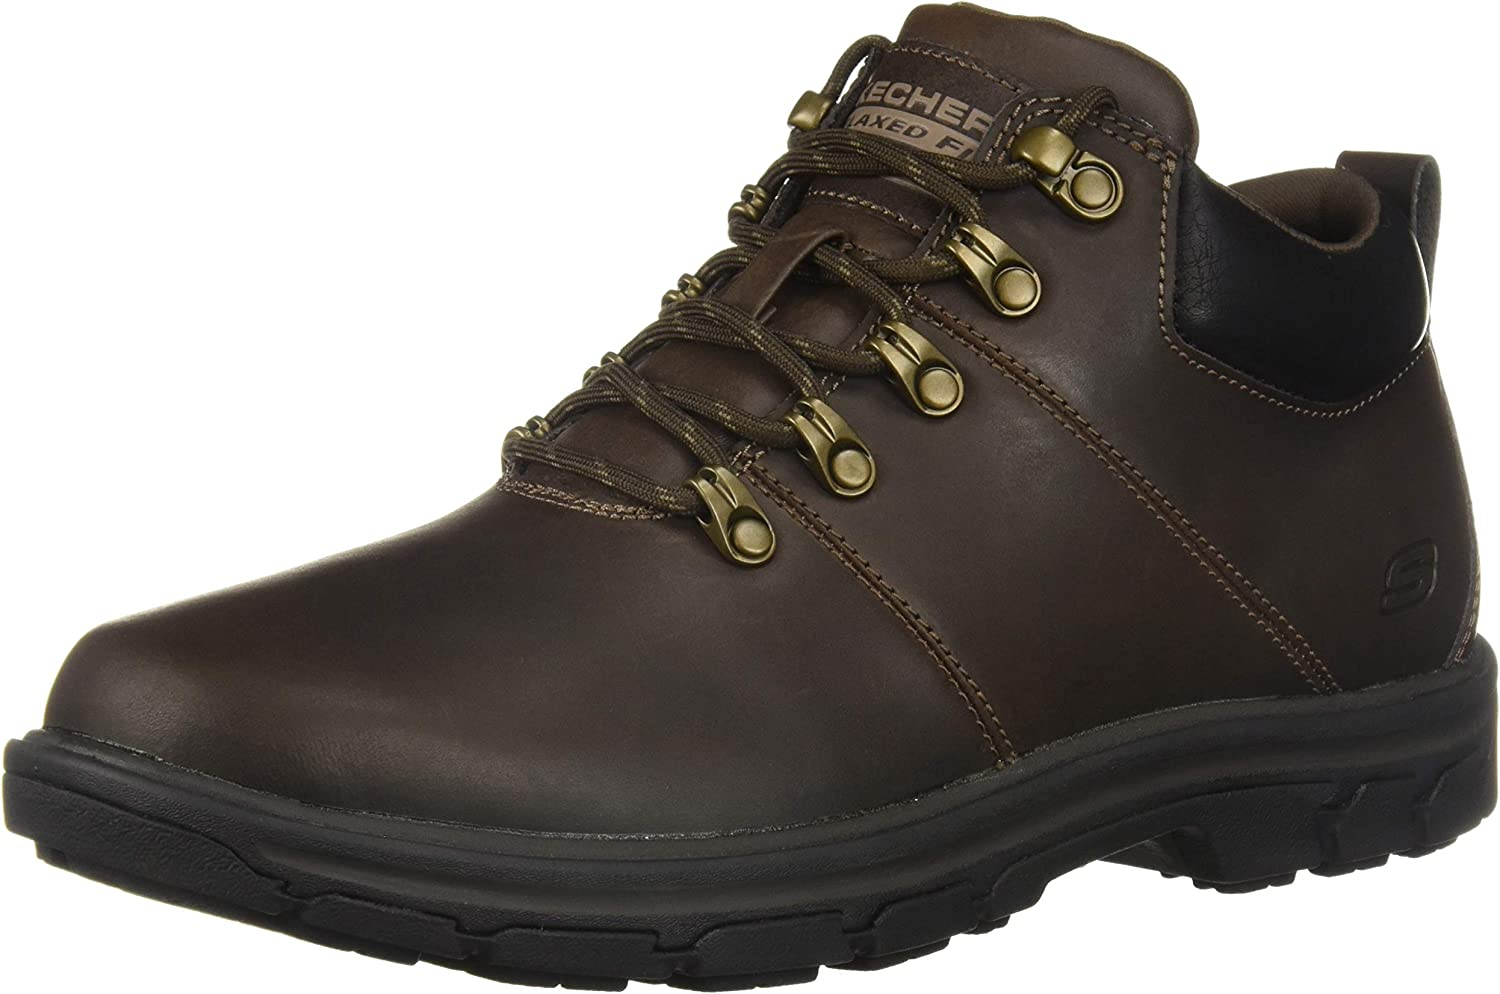 Skechers Hommes's SegHommest-VENARO Ankle démarrage, Chocolate, 7 Medium US